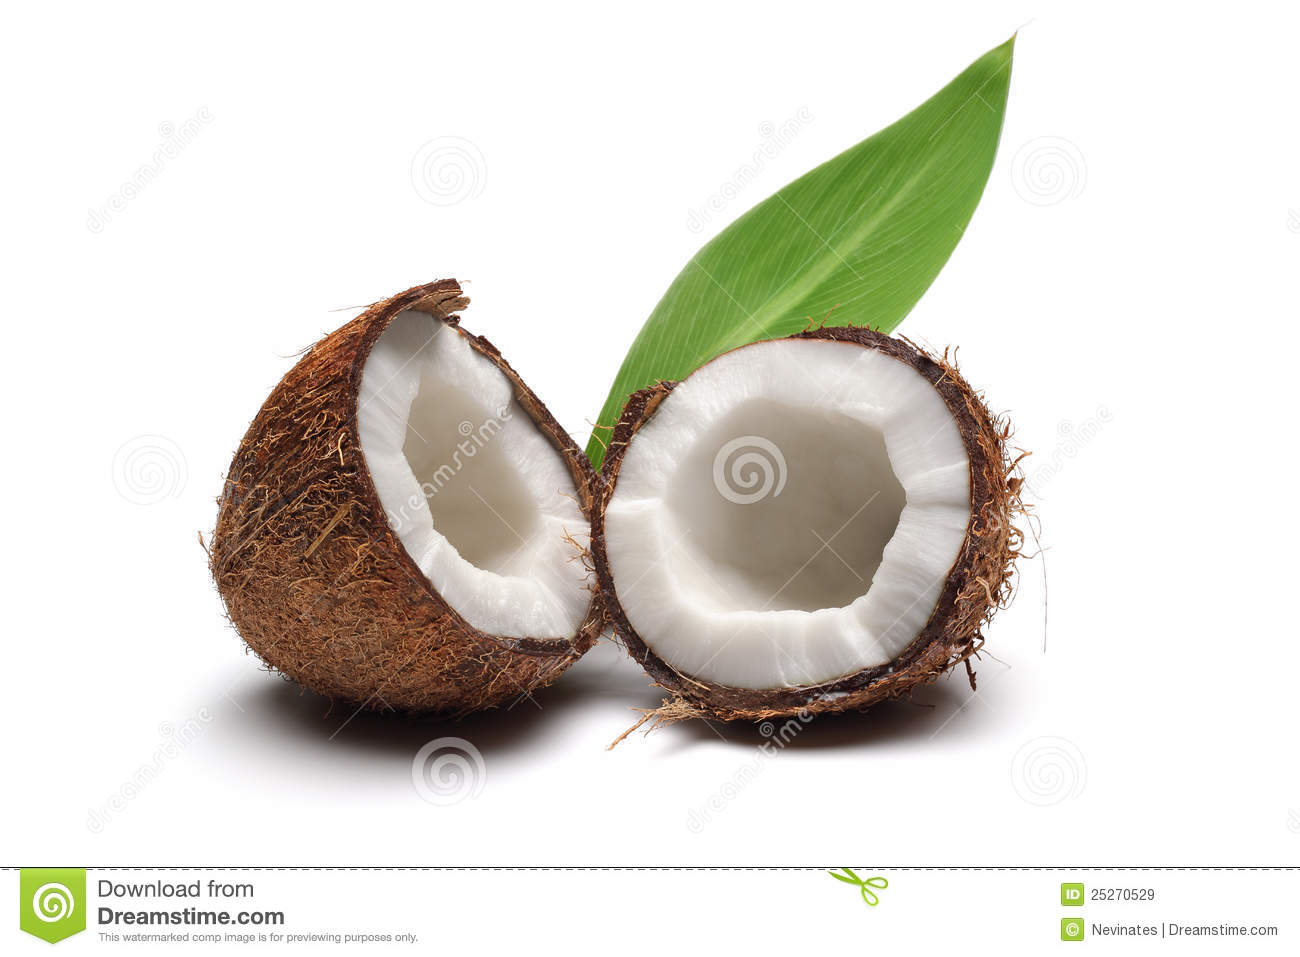 Download Coconut stock image. Image of brown, healthy, fresh, coconut - 25270529